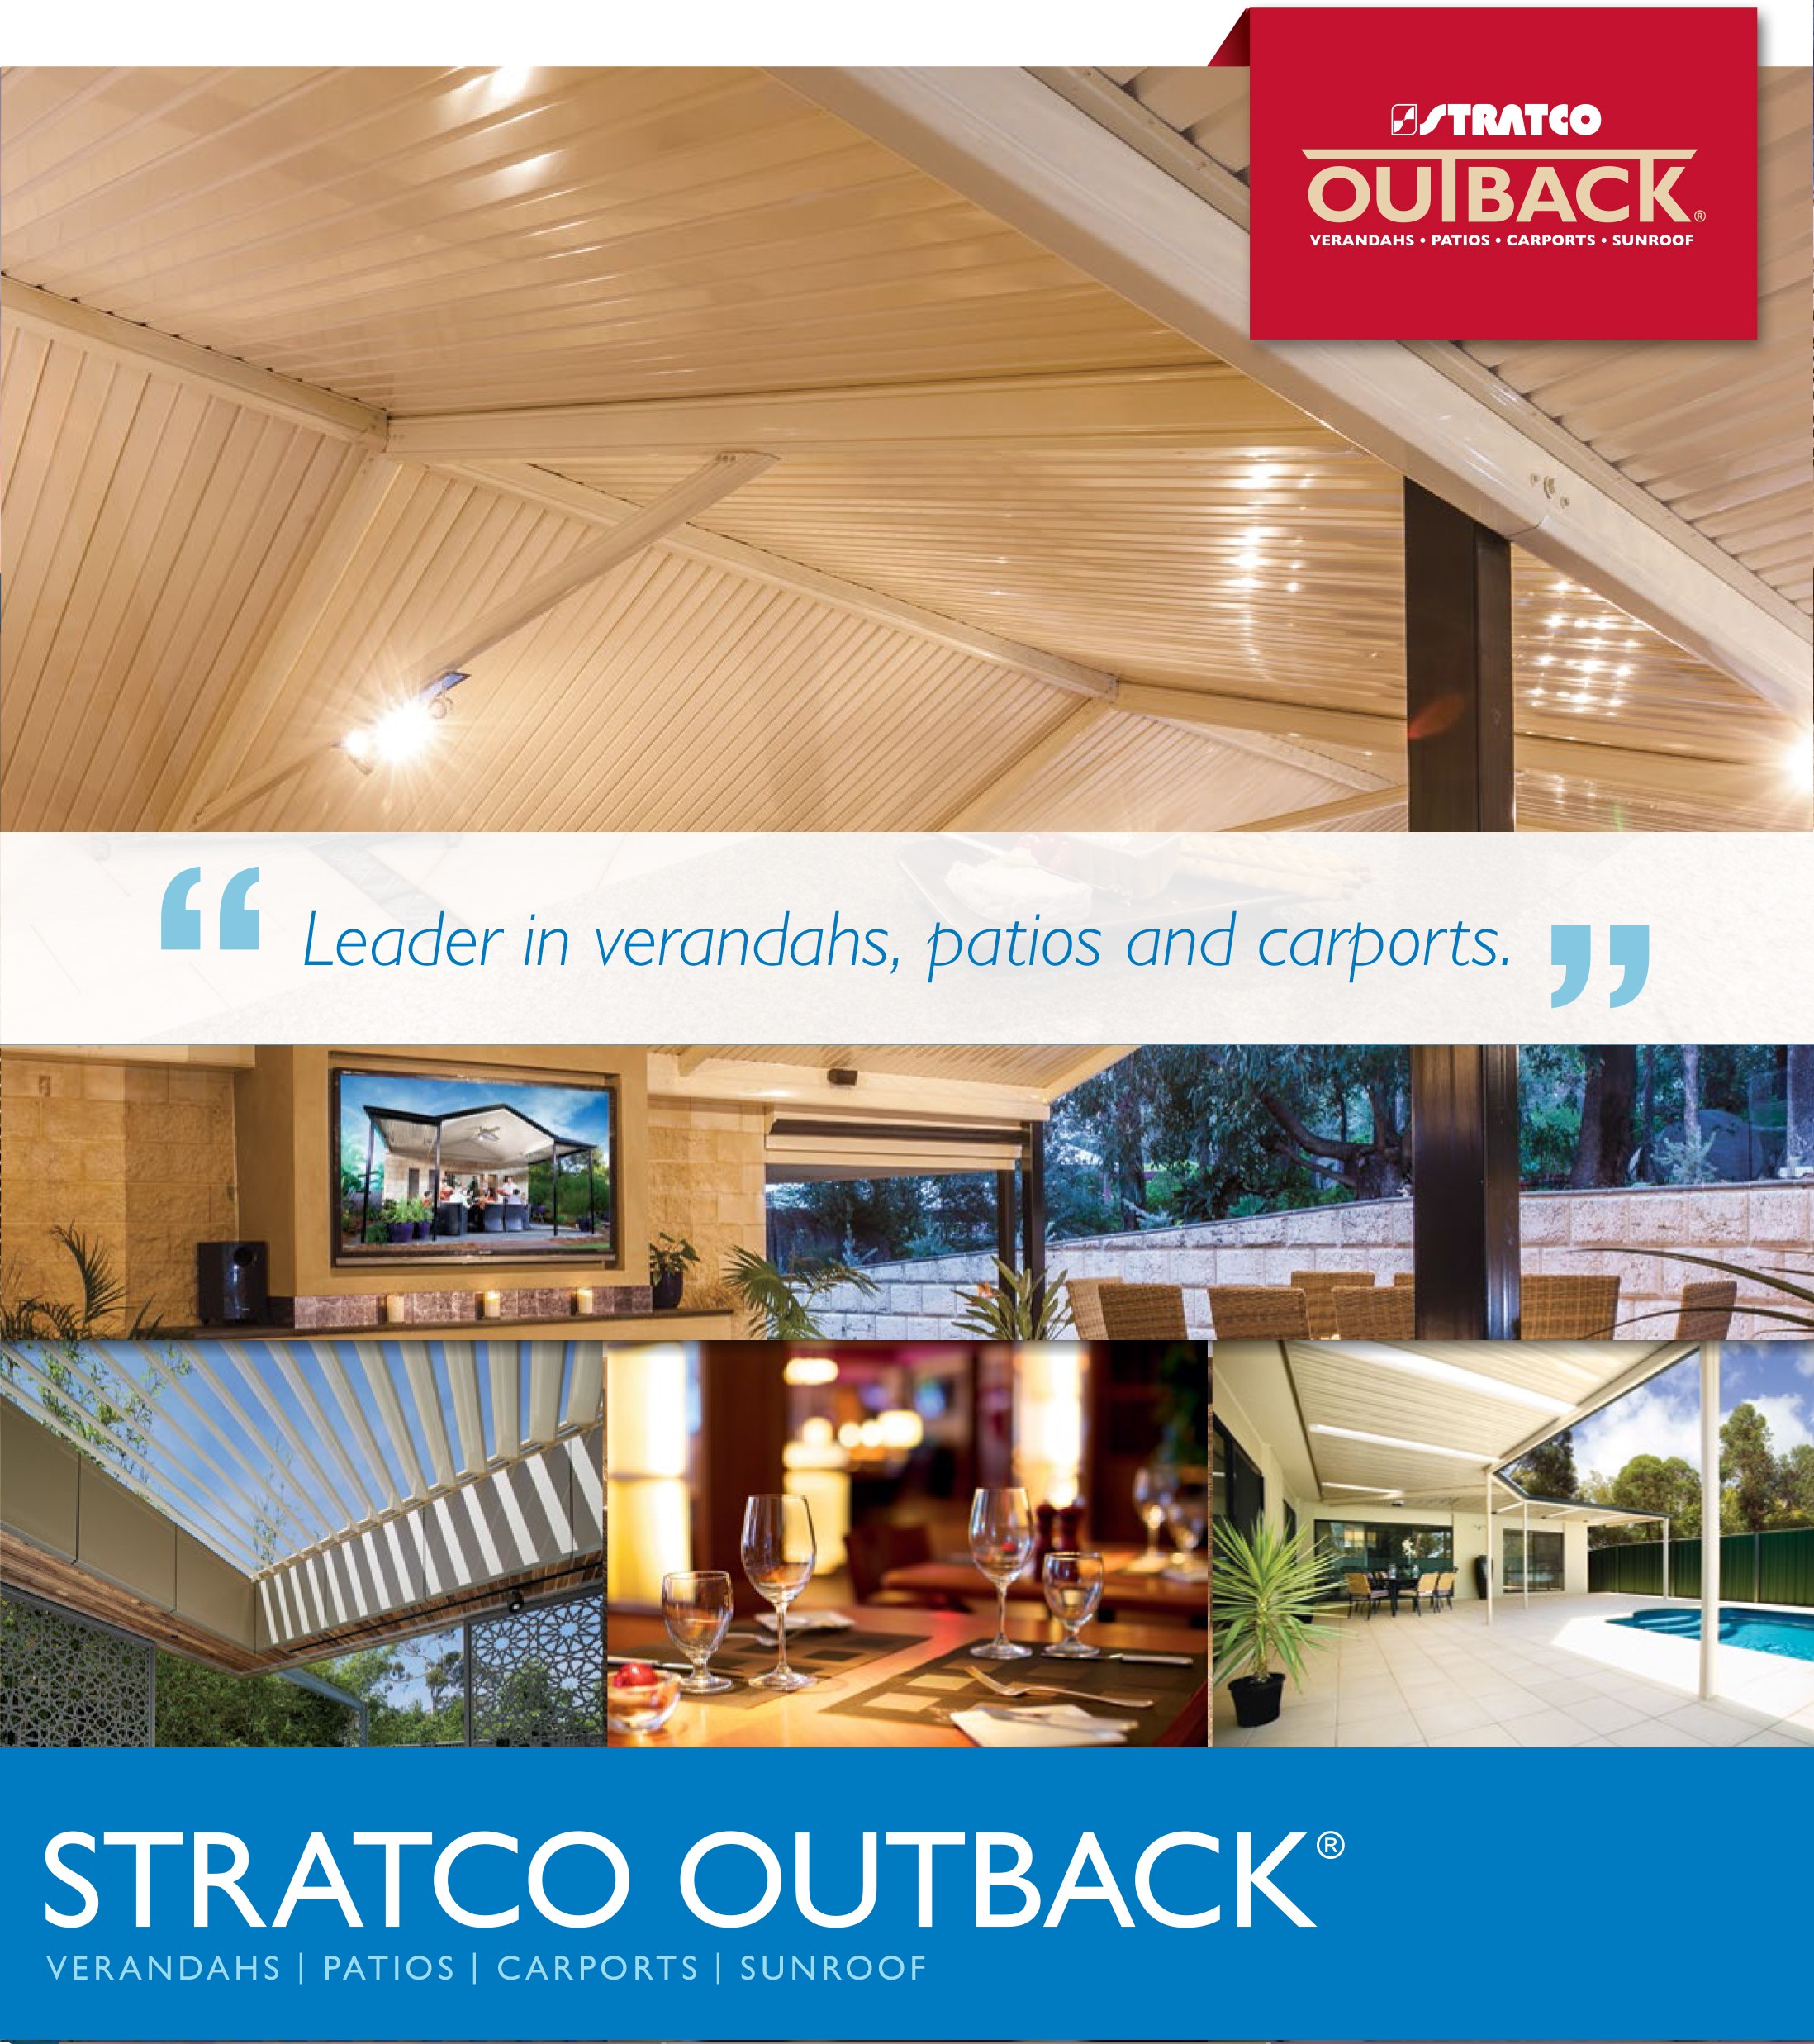 stratco-outback - Perfect Patios